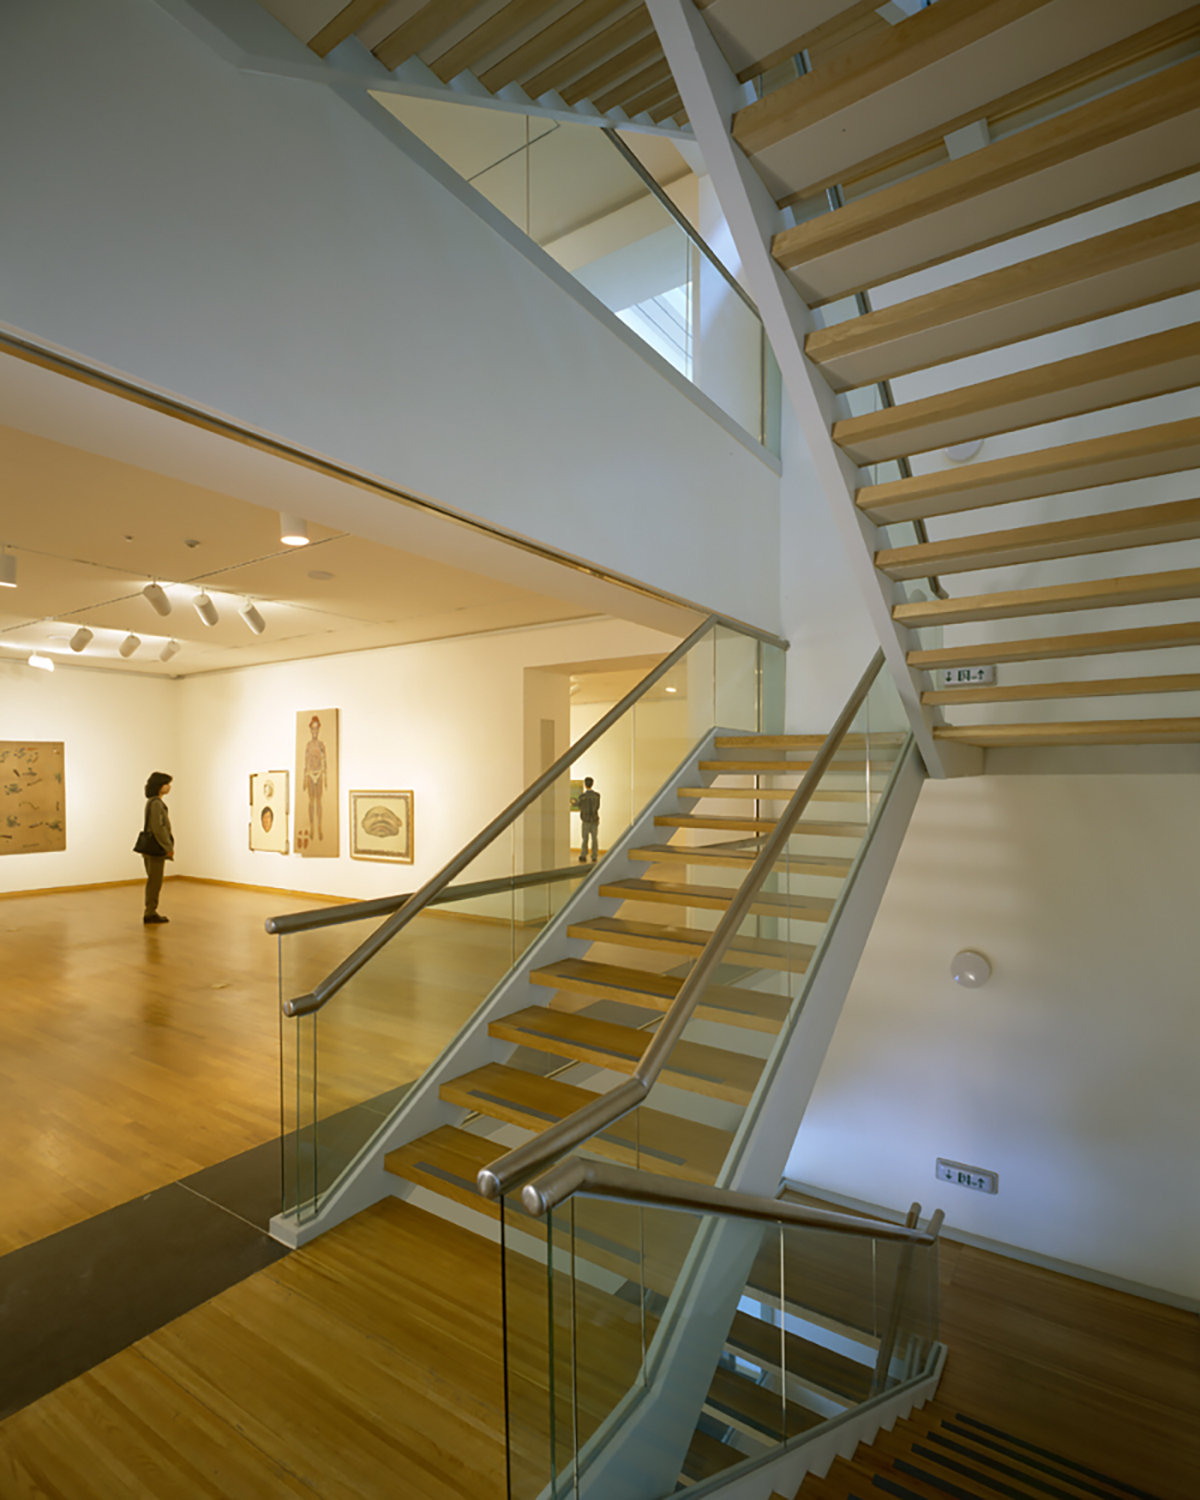 8 tskp kumho museum foundation kum ho art gallery interior gallery space artificial and natural lighting view of stairs 1400 xxx q85